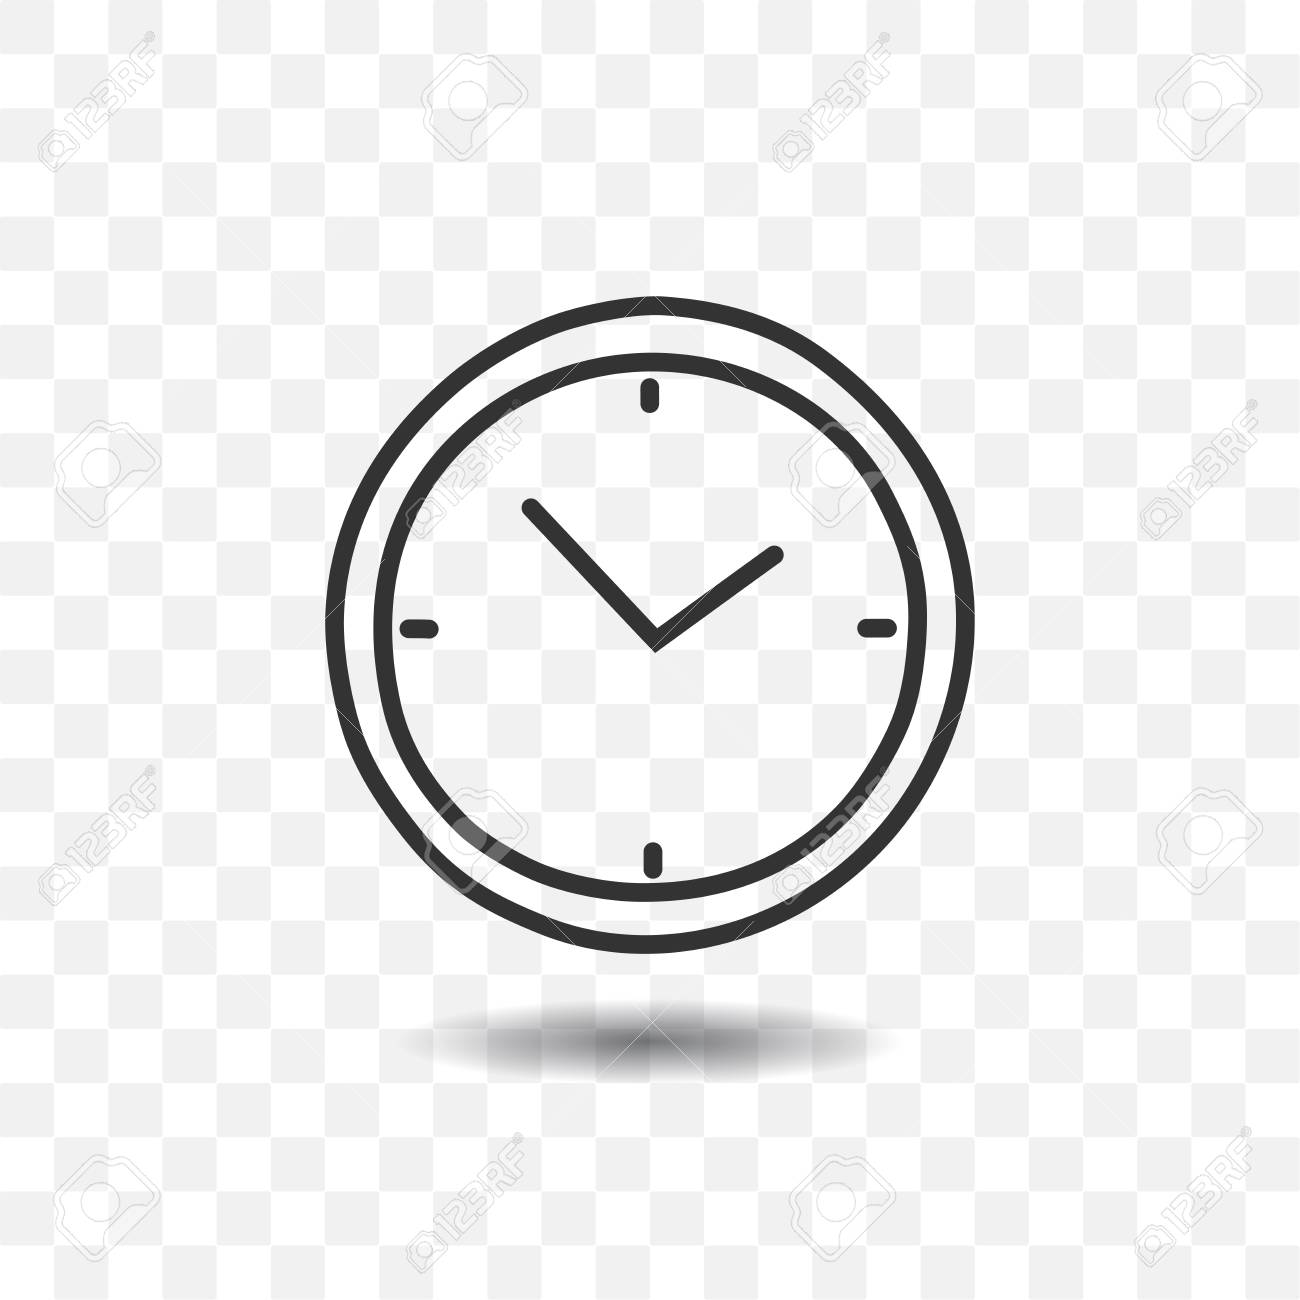 clock timer icon with shadow on transparent background royalty free